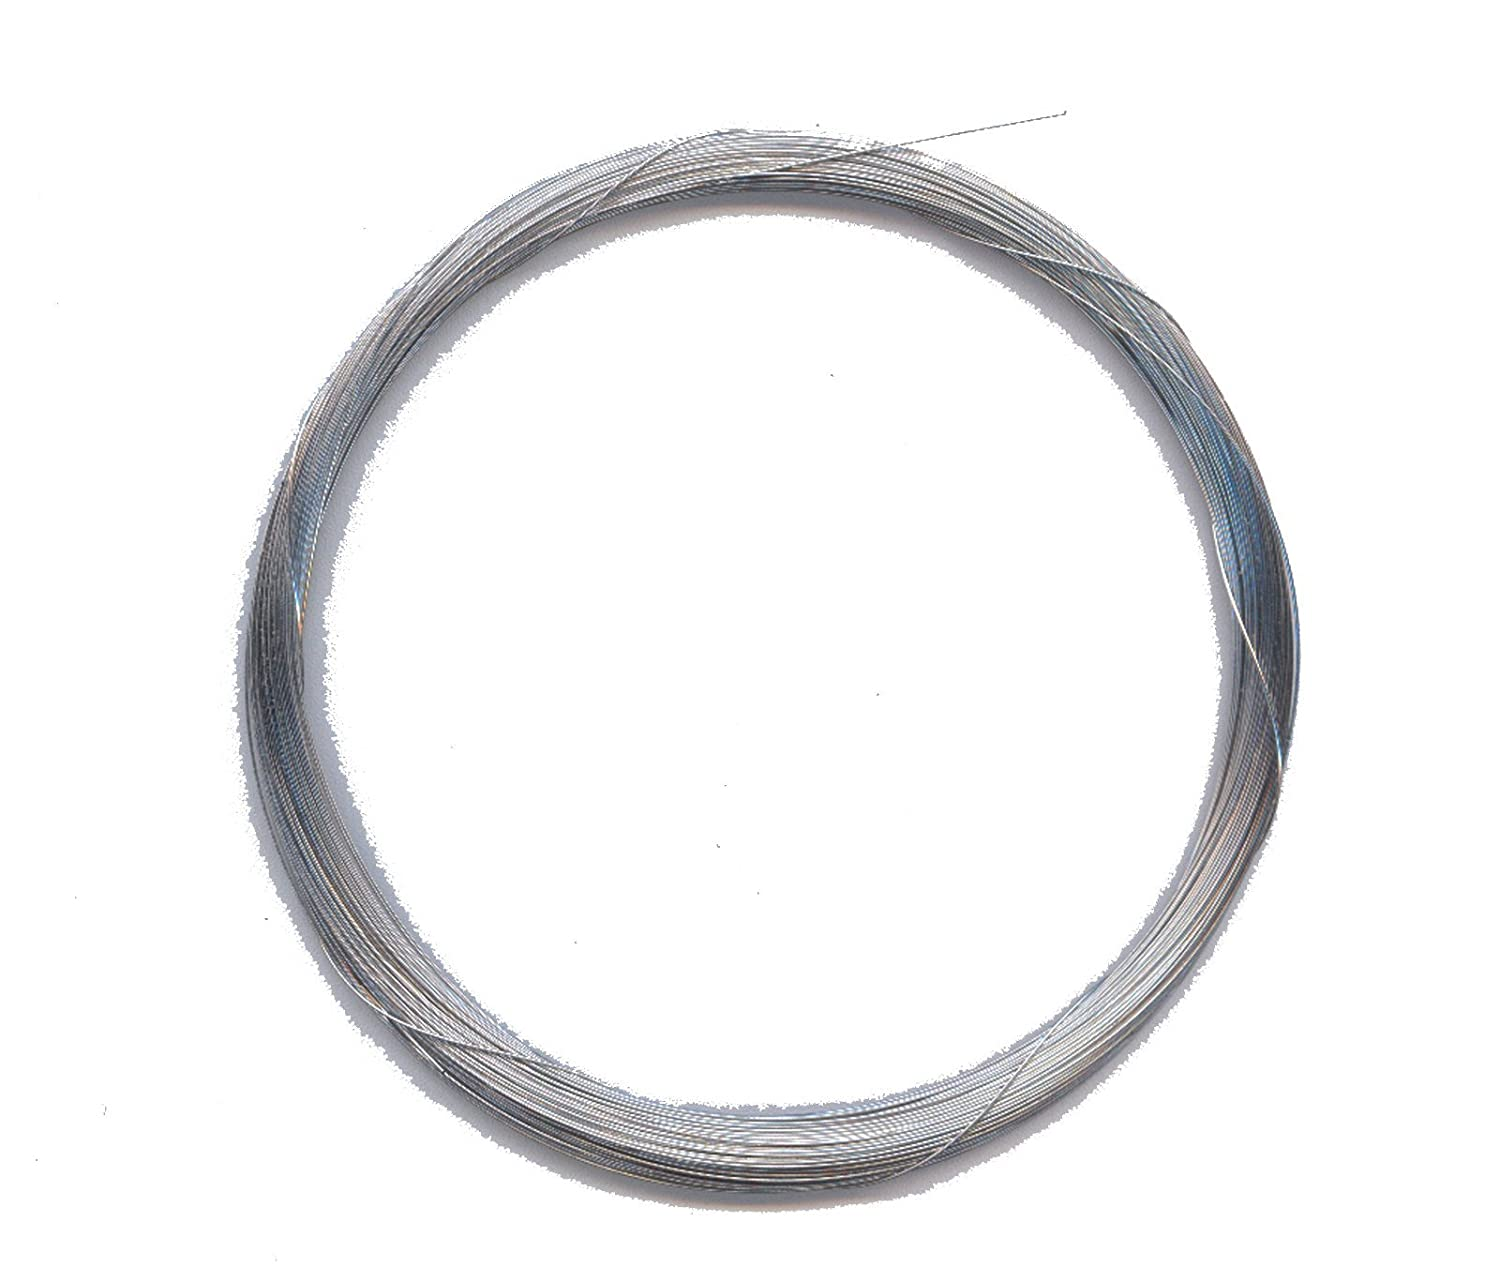 Sitar String Coil, Guage No. 2, used for Baaj Steel or 1St String in Ravi Shankar Style, made in Germany, Roselu